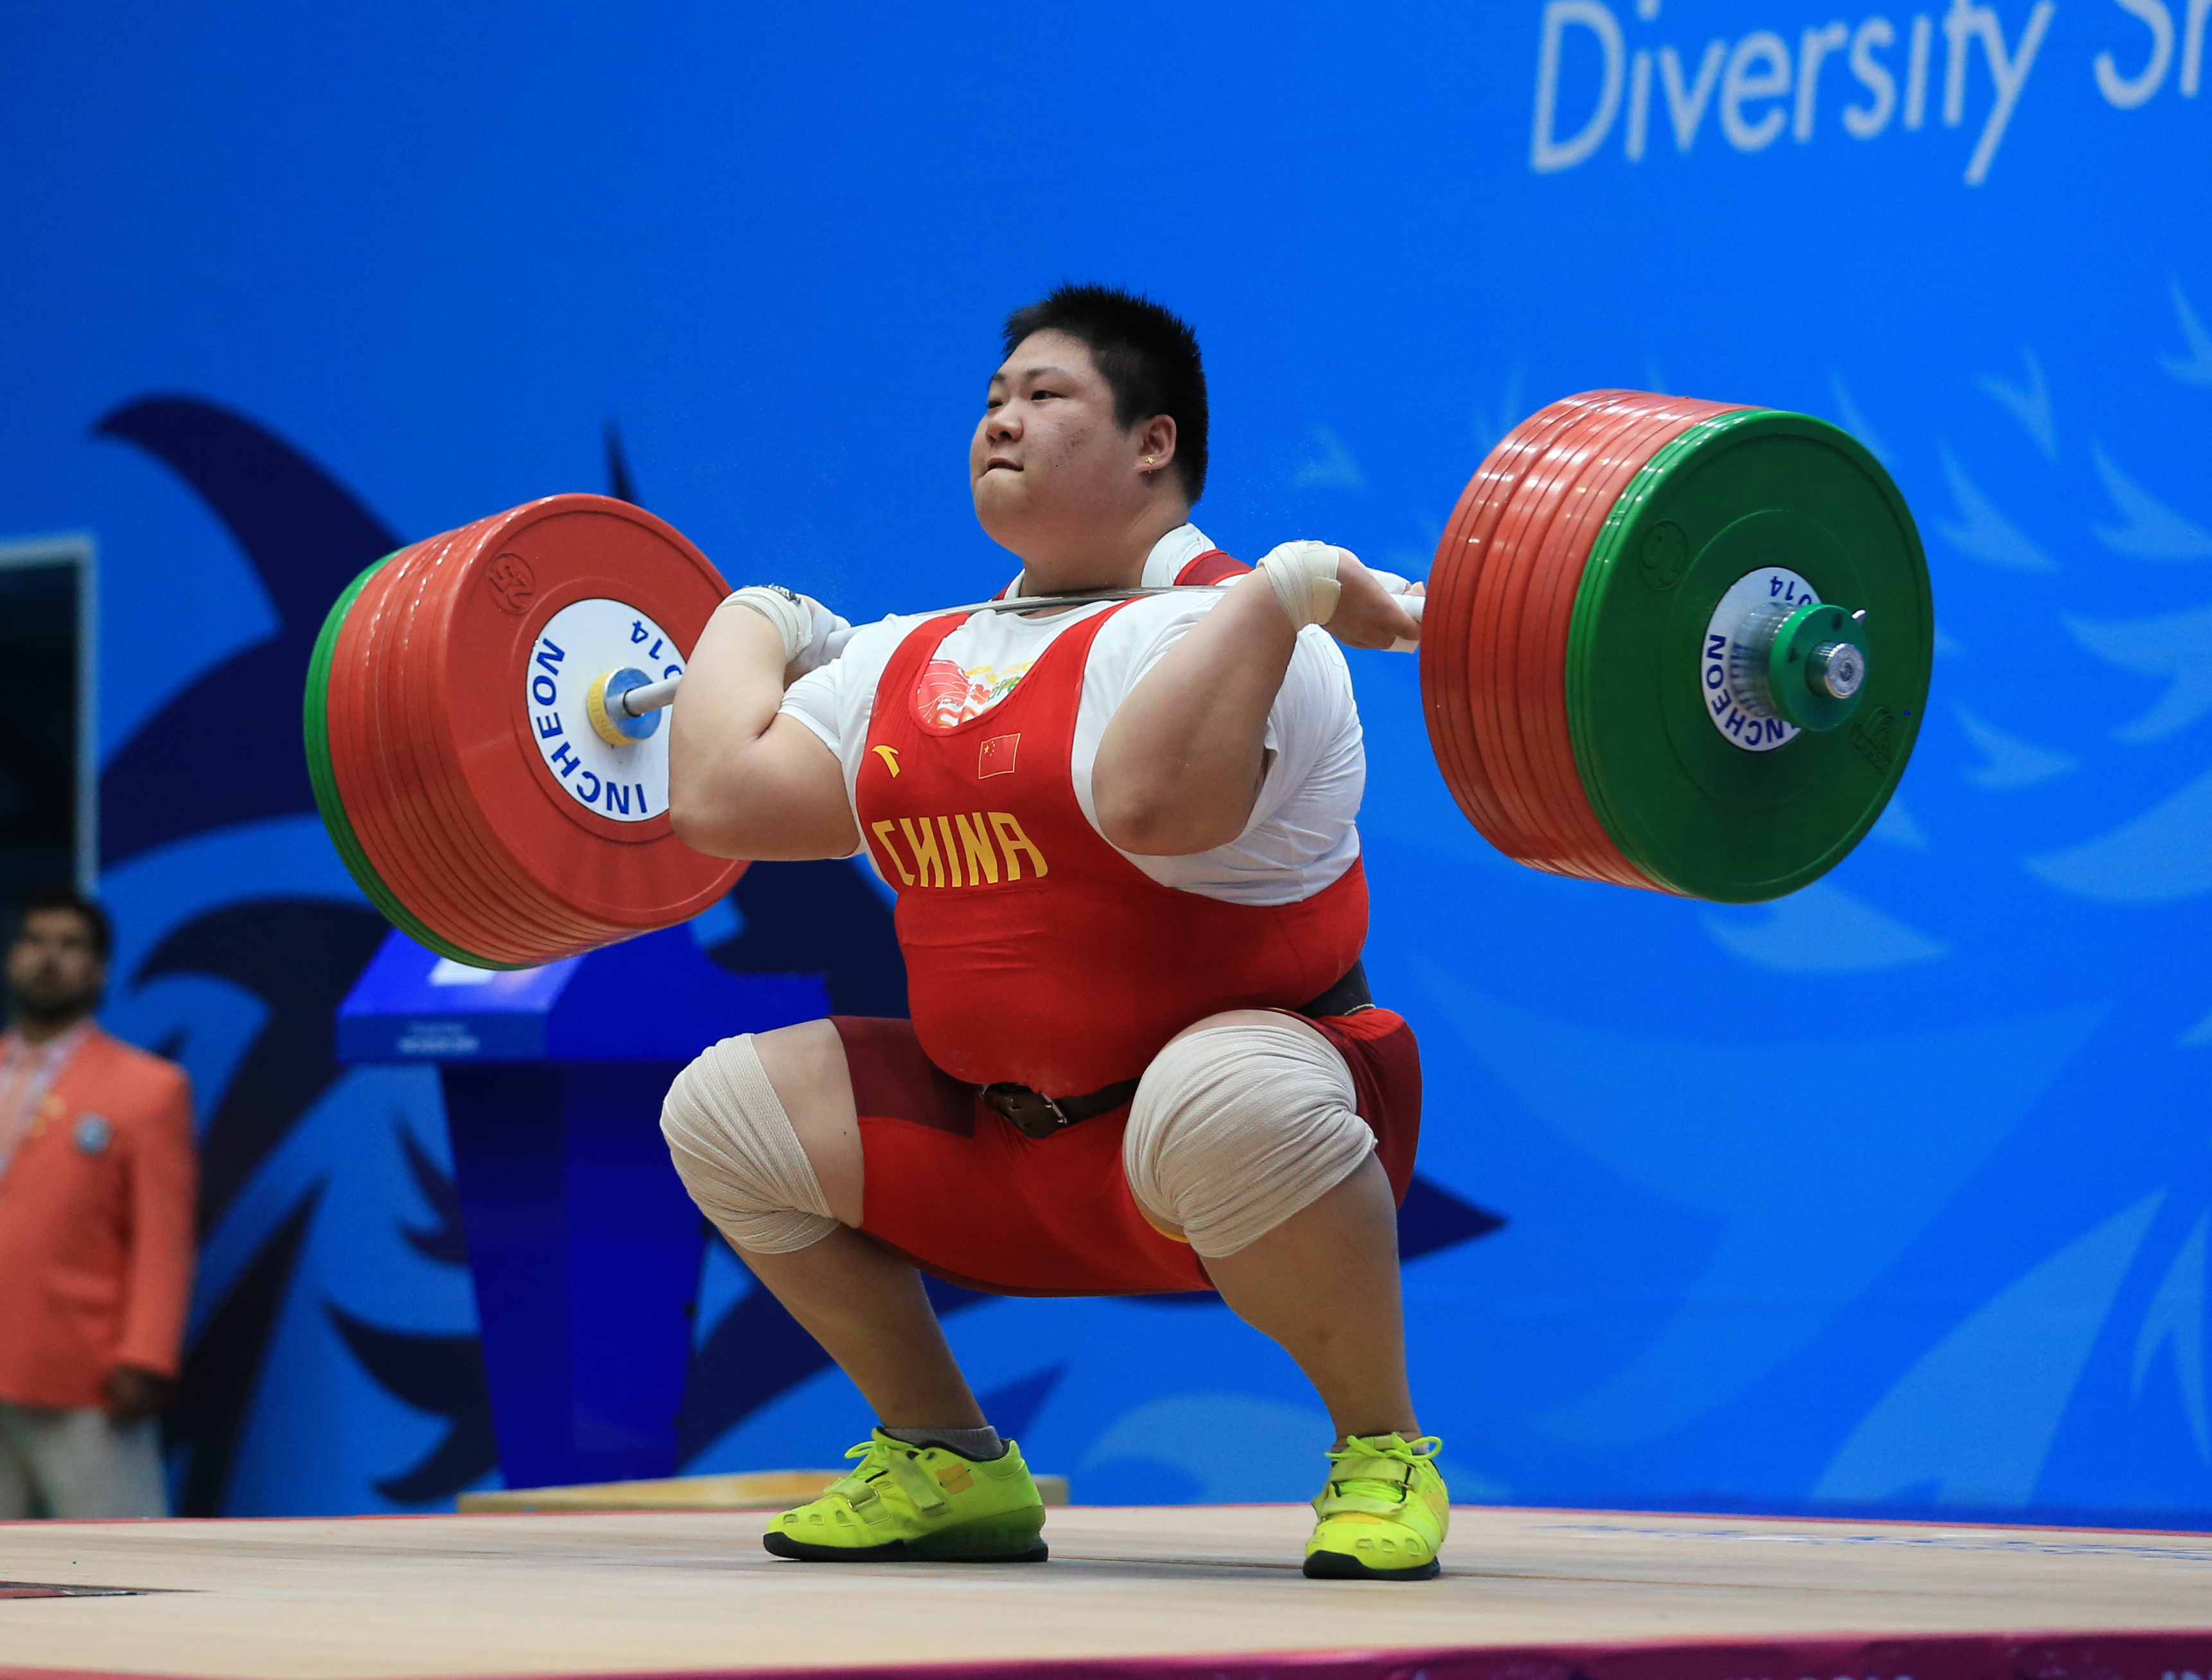 Wo womens bench press records by weight class - Zhou Lulu Chn Setting World Record 192 Kg In Clean And Jerk As Bar Bend Approaches Excessive For Safe Performance Of The Equipment